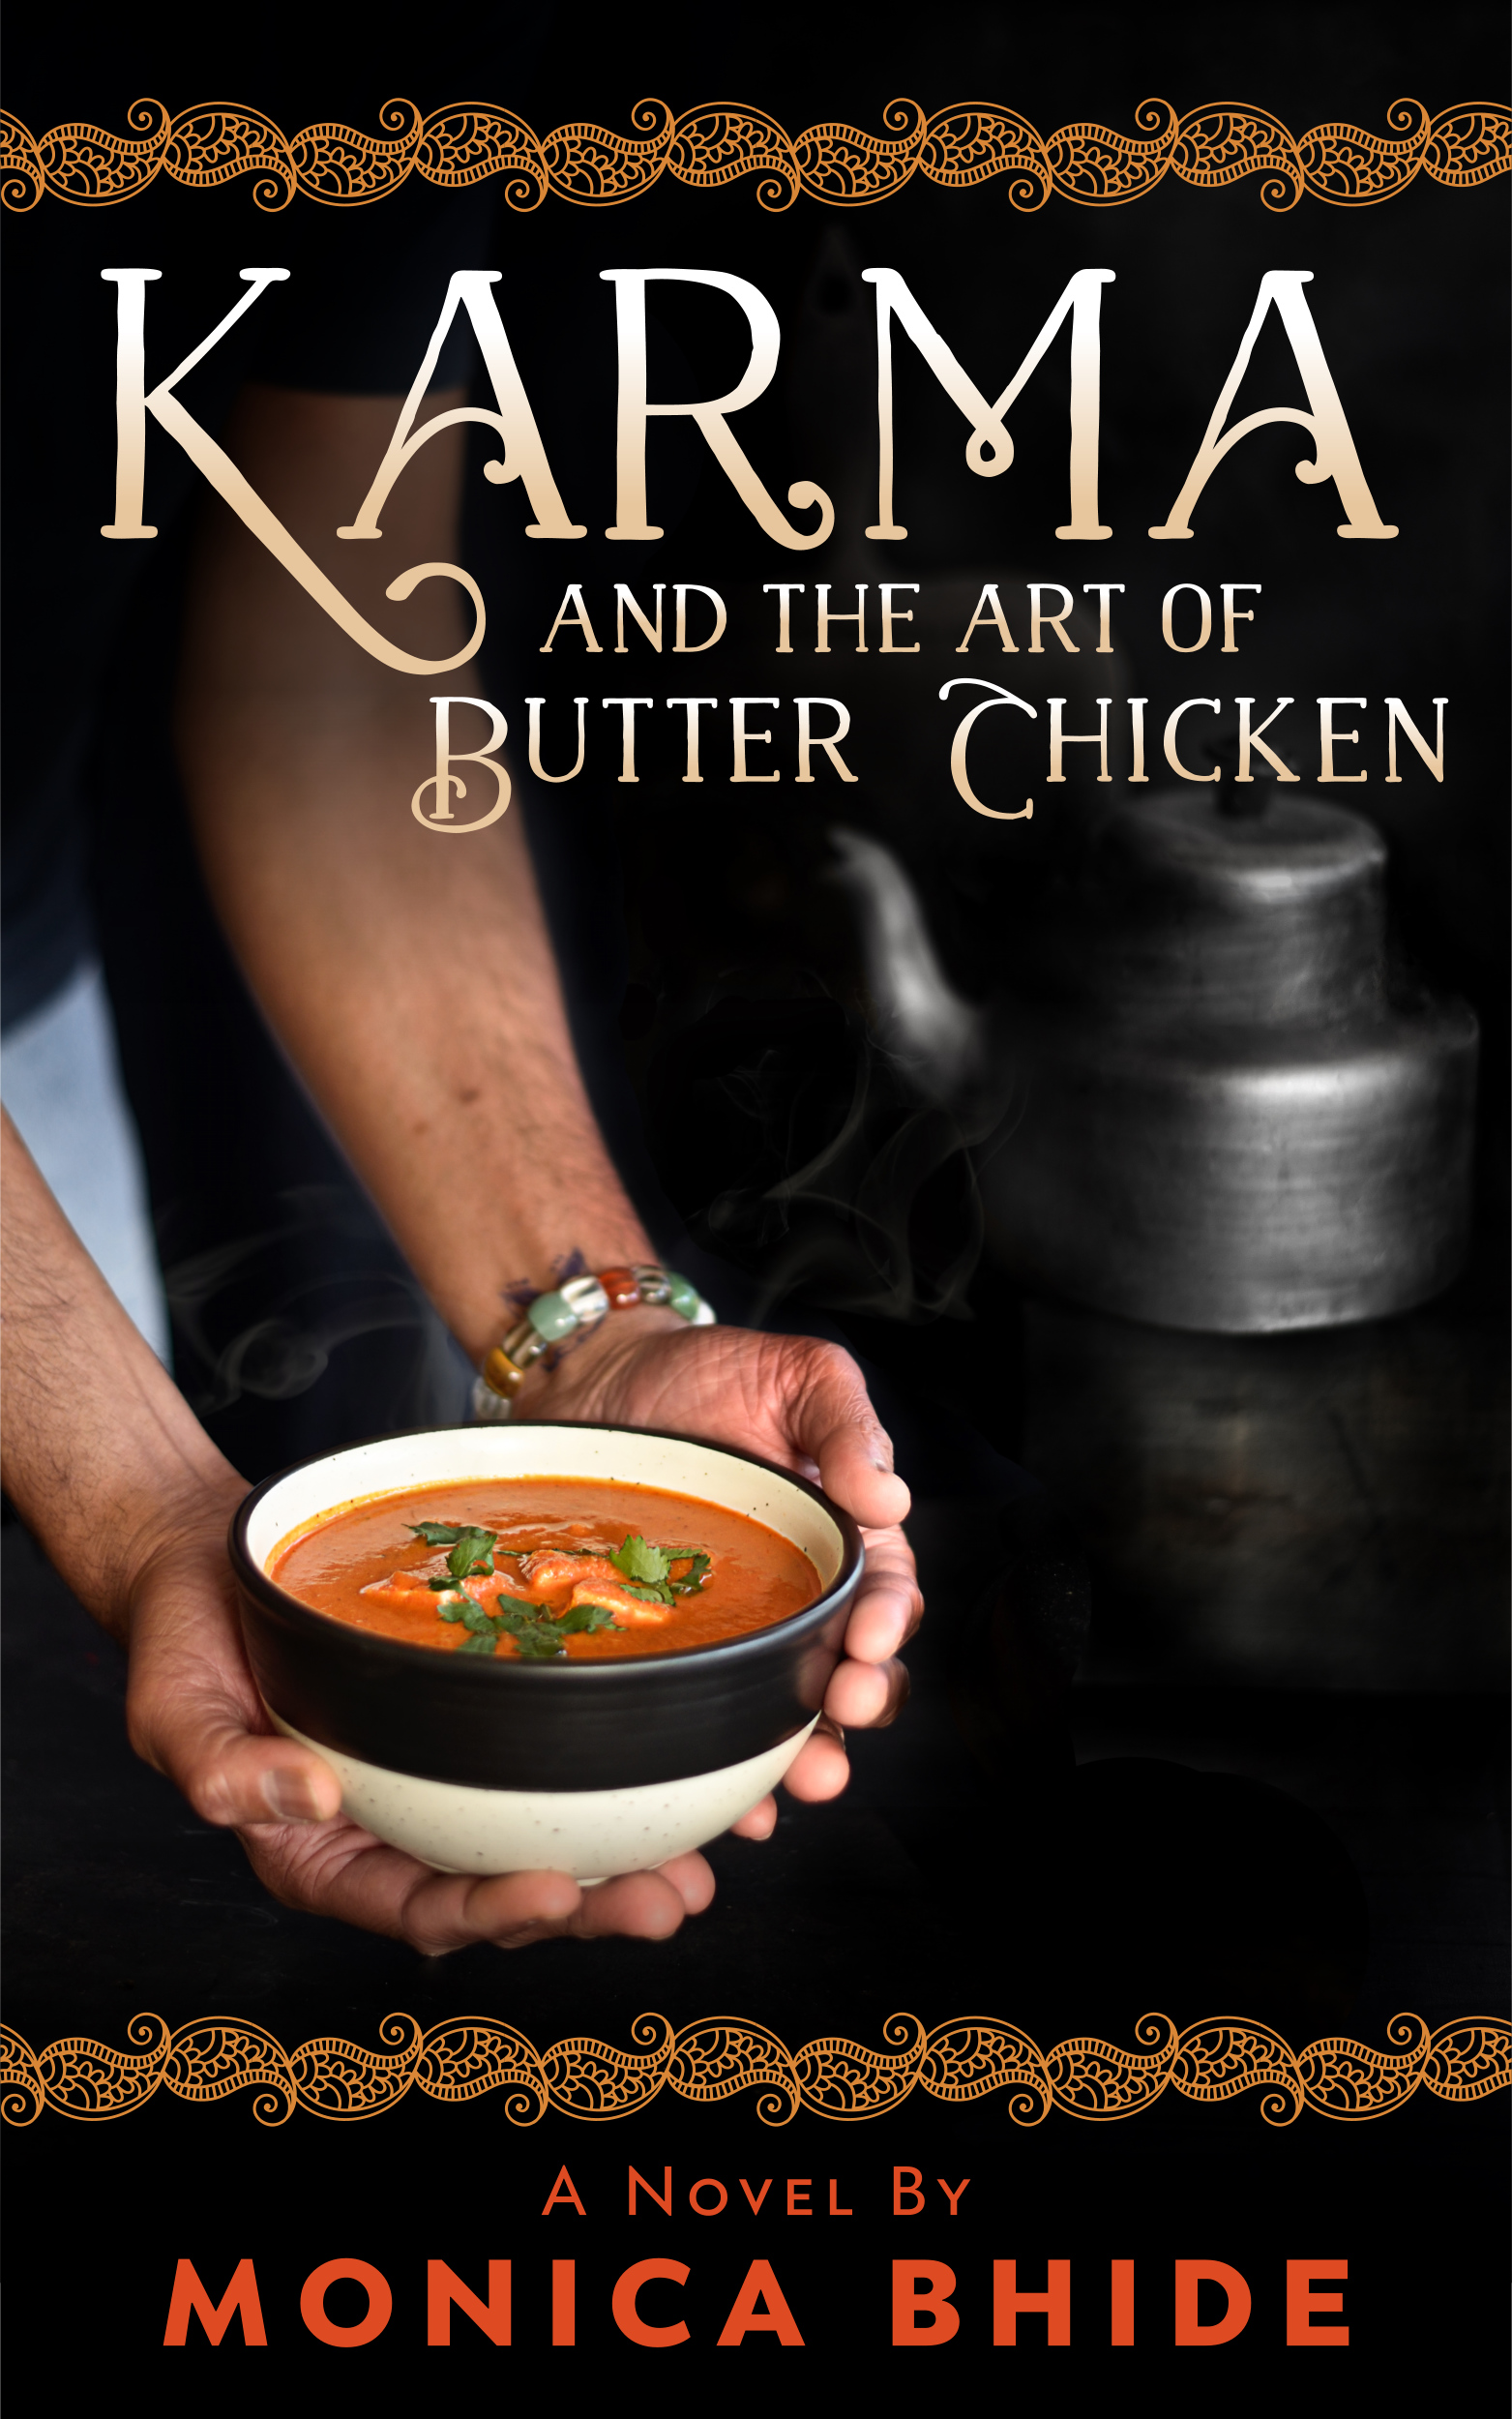 """Karma and the Art of Butter Chicken"" by Monica Bhide (Image: Courtesy{ }"